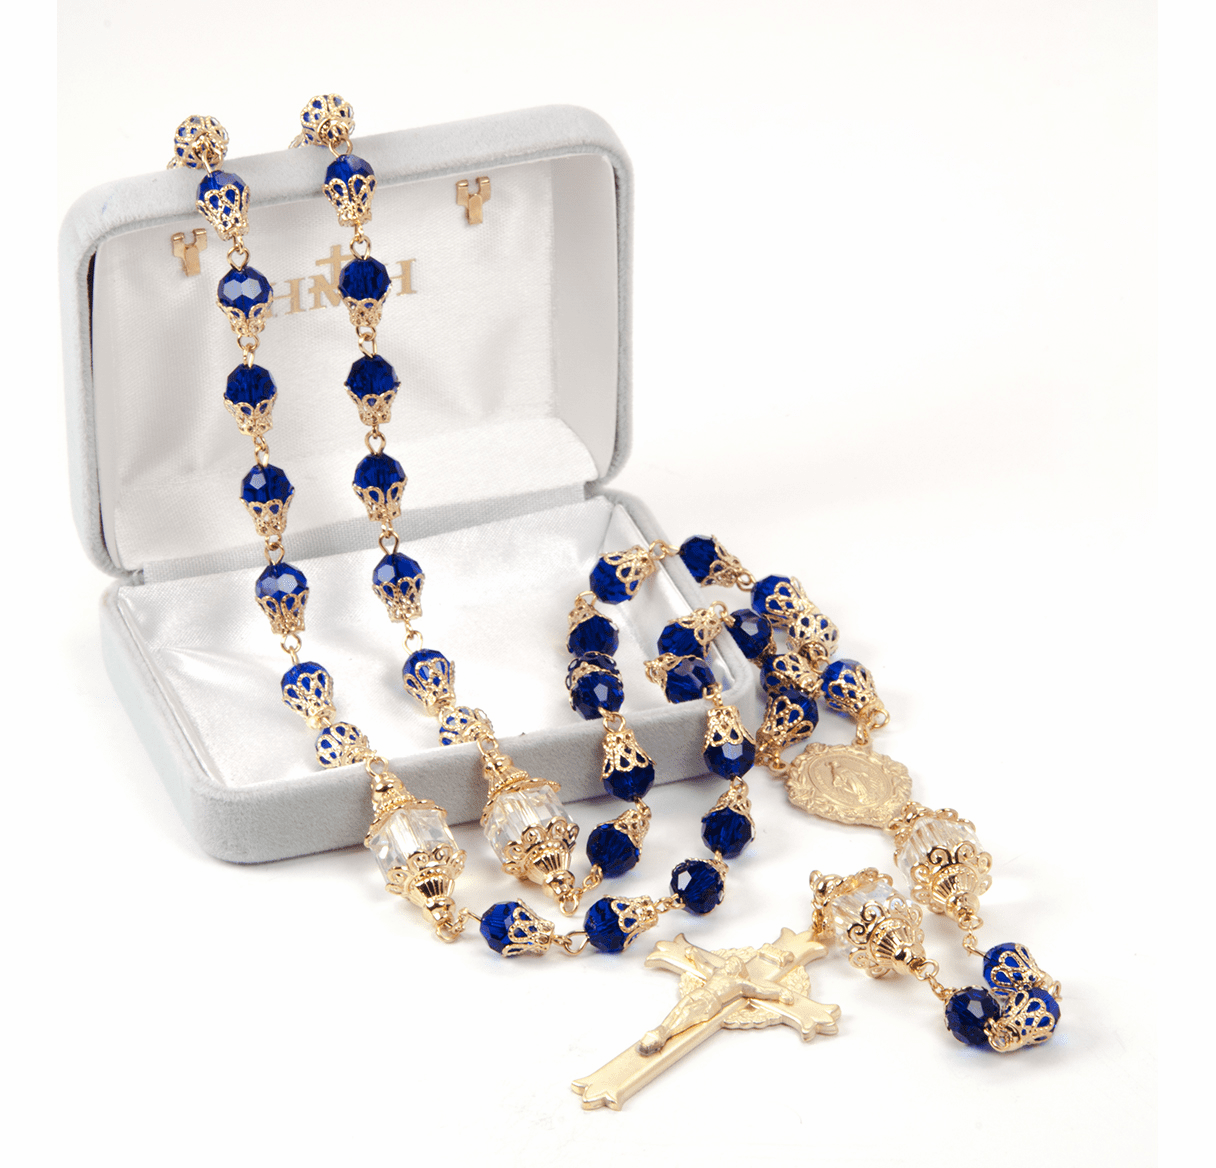 HMH Religious Mary Blue Tear Drop Catholic Prayer Rosary